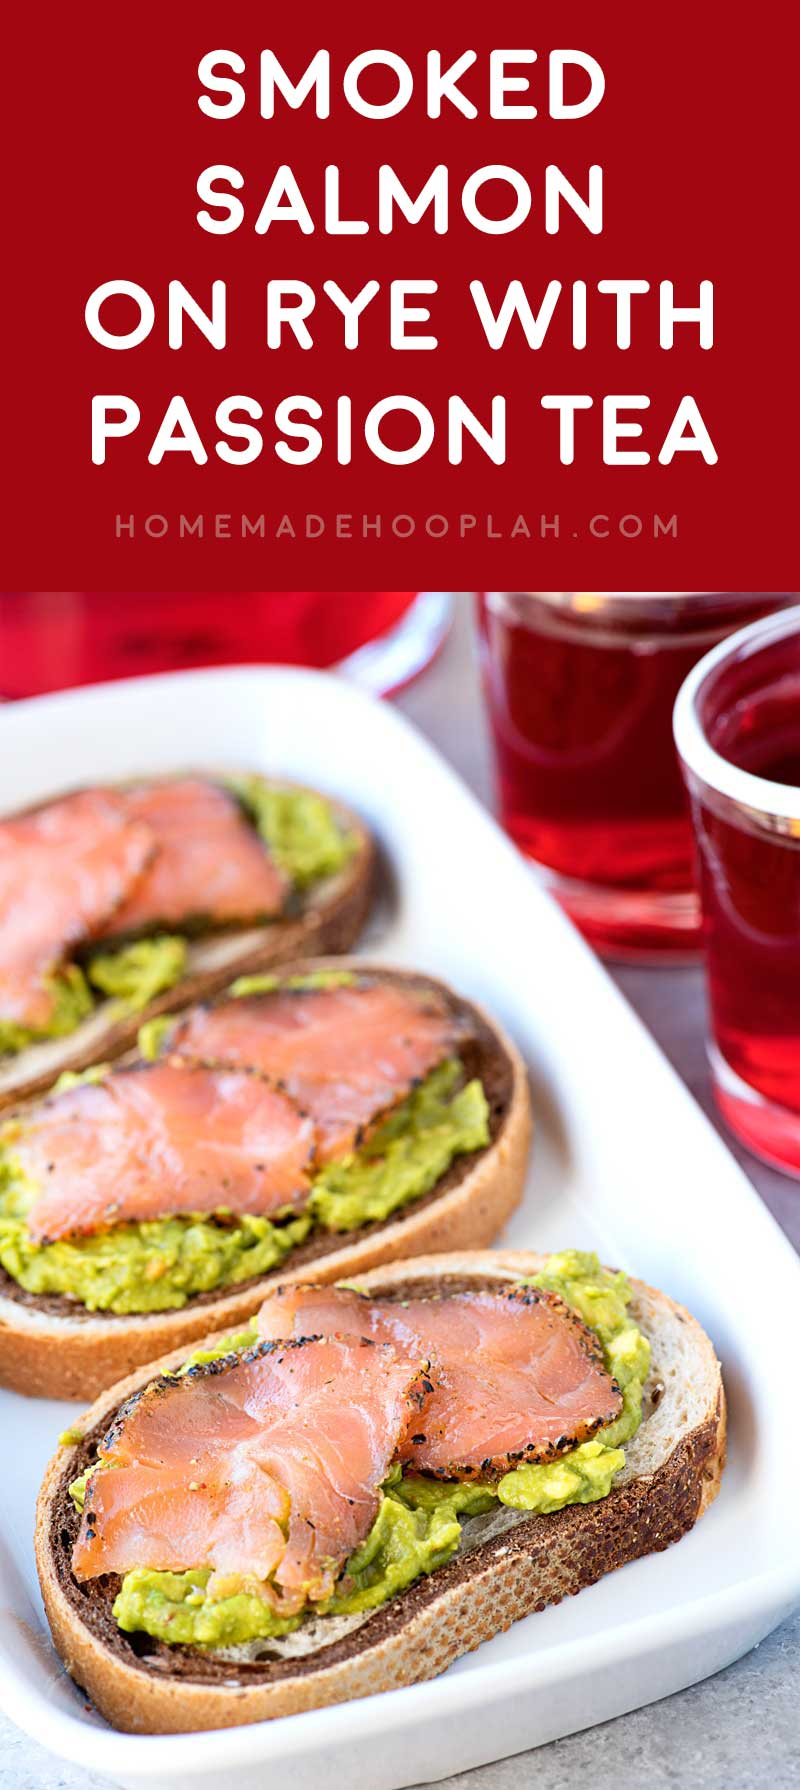 Smoked Salmon on Rye with Passion Tea! A savory smoked salmon appetizer with chili avocado spread on rye bread and served with Tazo® Passion® Tea that you can #SipJoyfully. #ad | Homemadehooplah.com